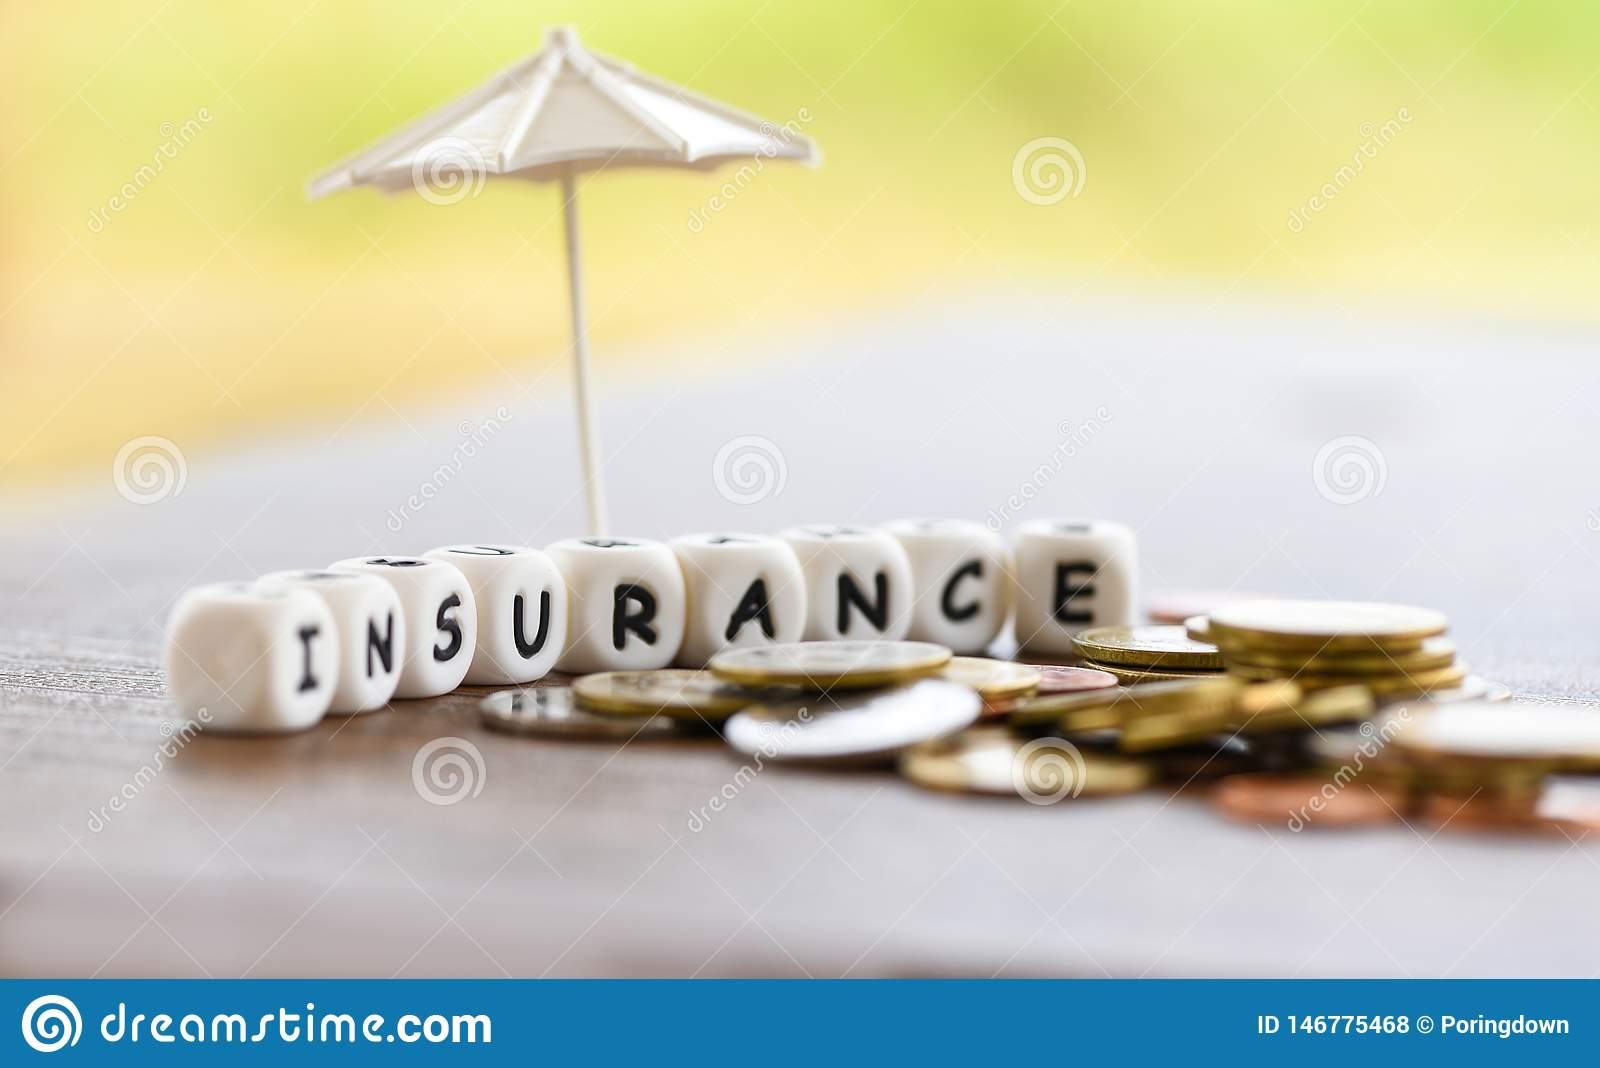 Sales insurance home , car, family concept